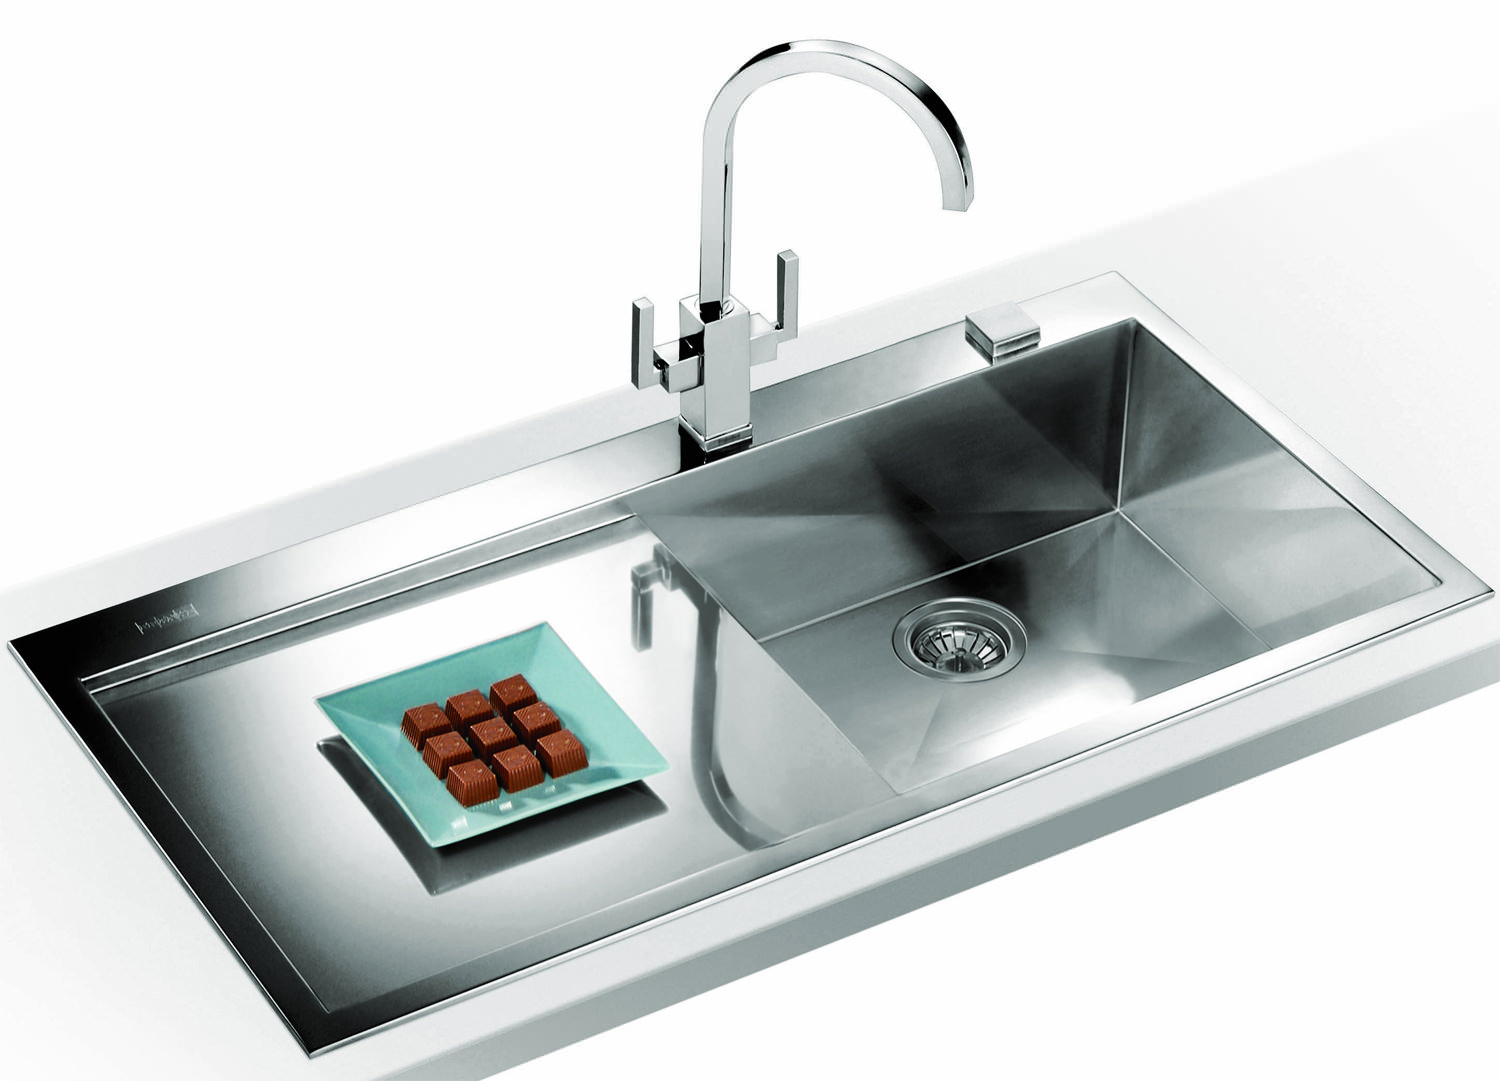 Best Stainless Steel Sinks Rated : ... of Franke Planar PPX 211 Slim-Top 1.0 Bowl Stainless Steel Inset Sink